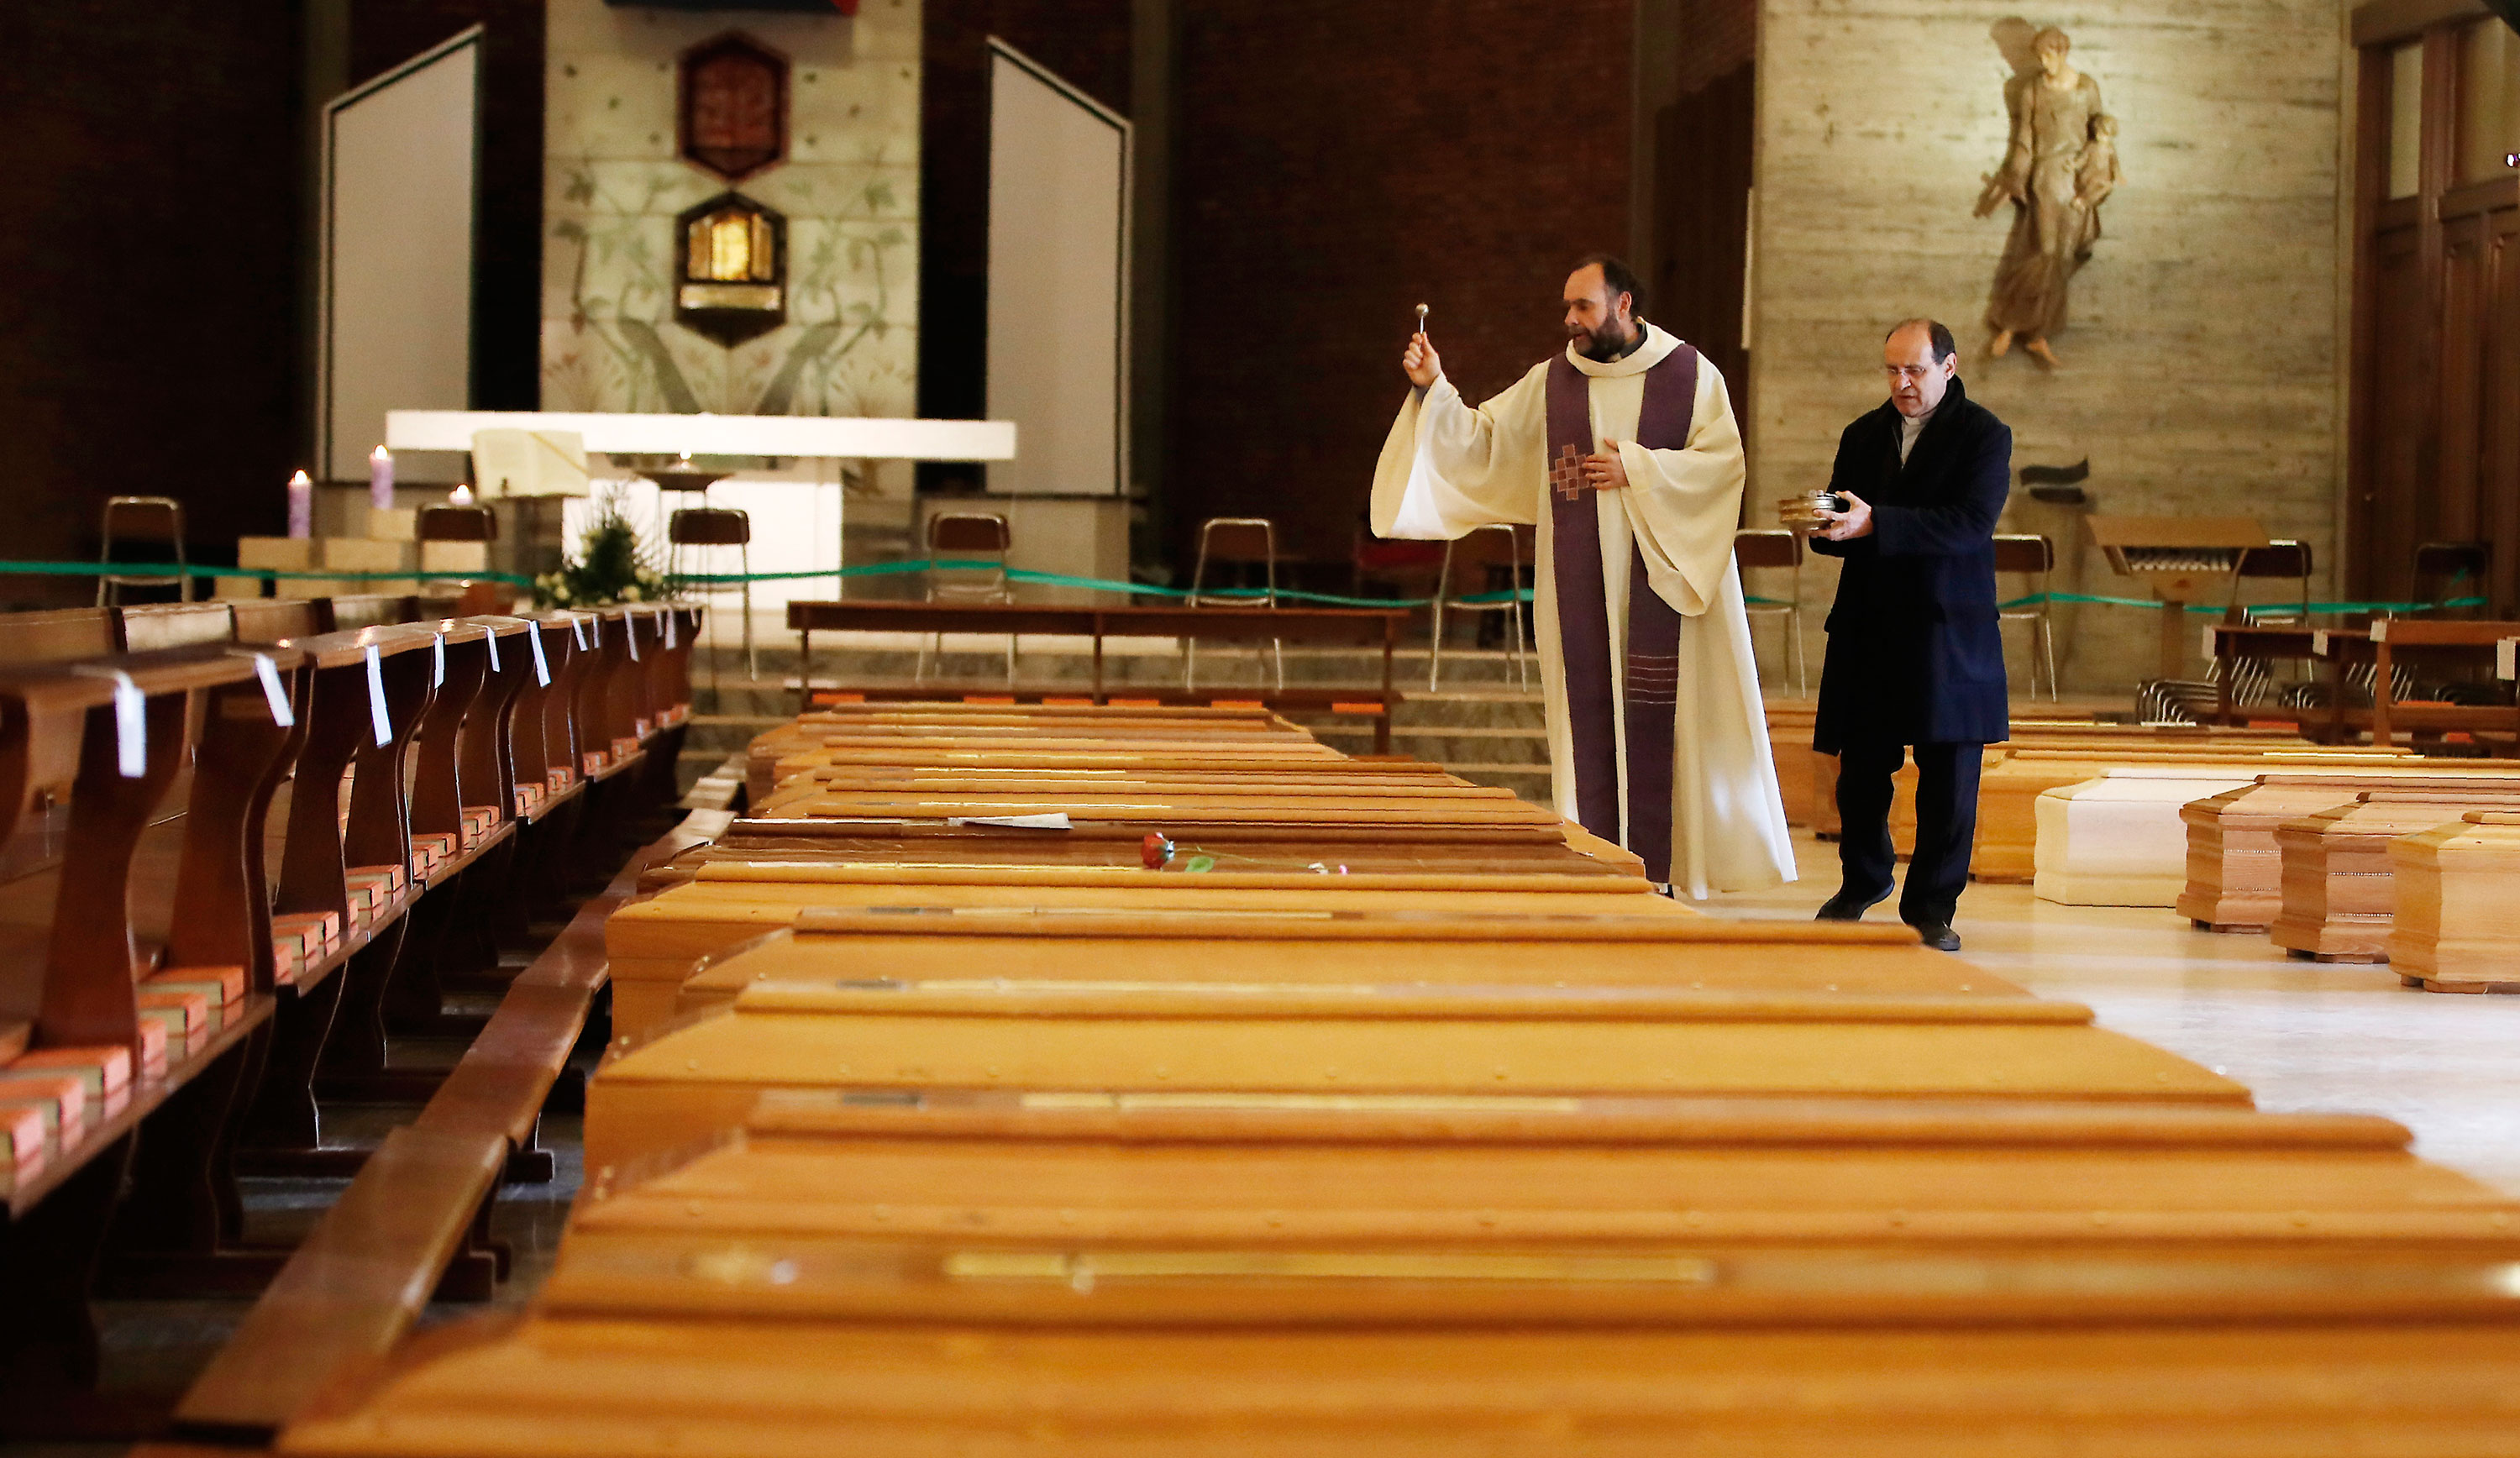 Don Marcello Crotti, on the left, blesses the coffins with Don Mario Carminati at San Giuseppe Church in Seriate, Italy, on March 28.